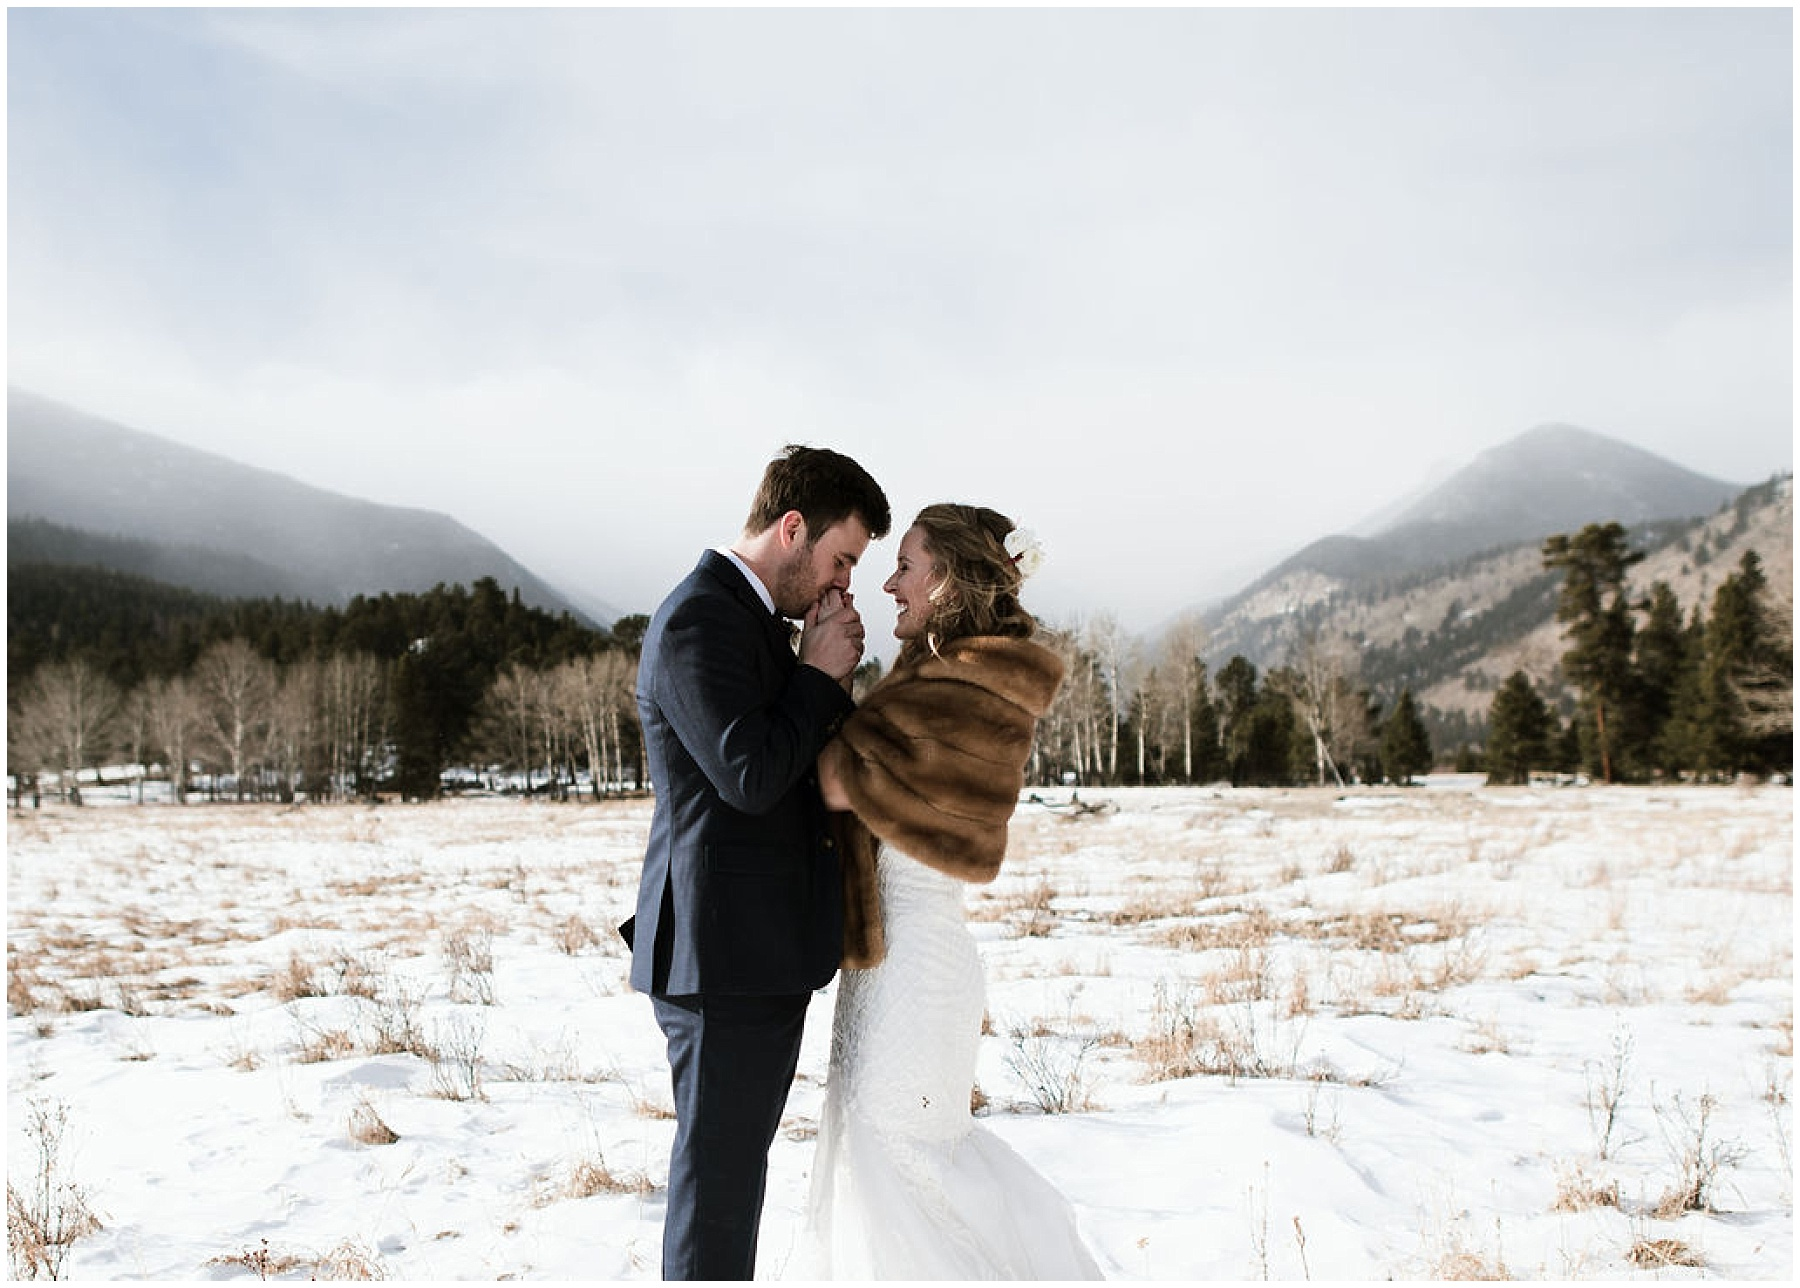 Katesalleyphotography-145_Haley and Dan get married in Estes Park.jpg